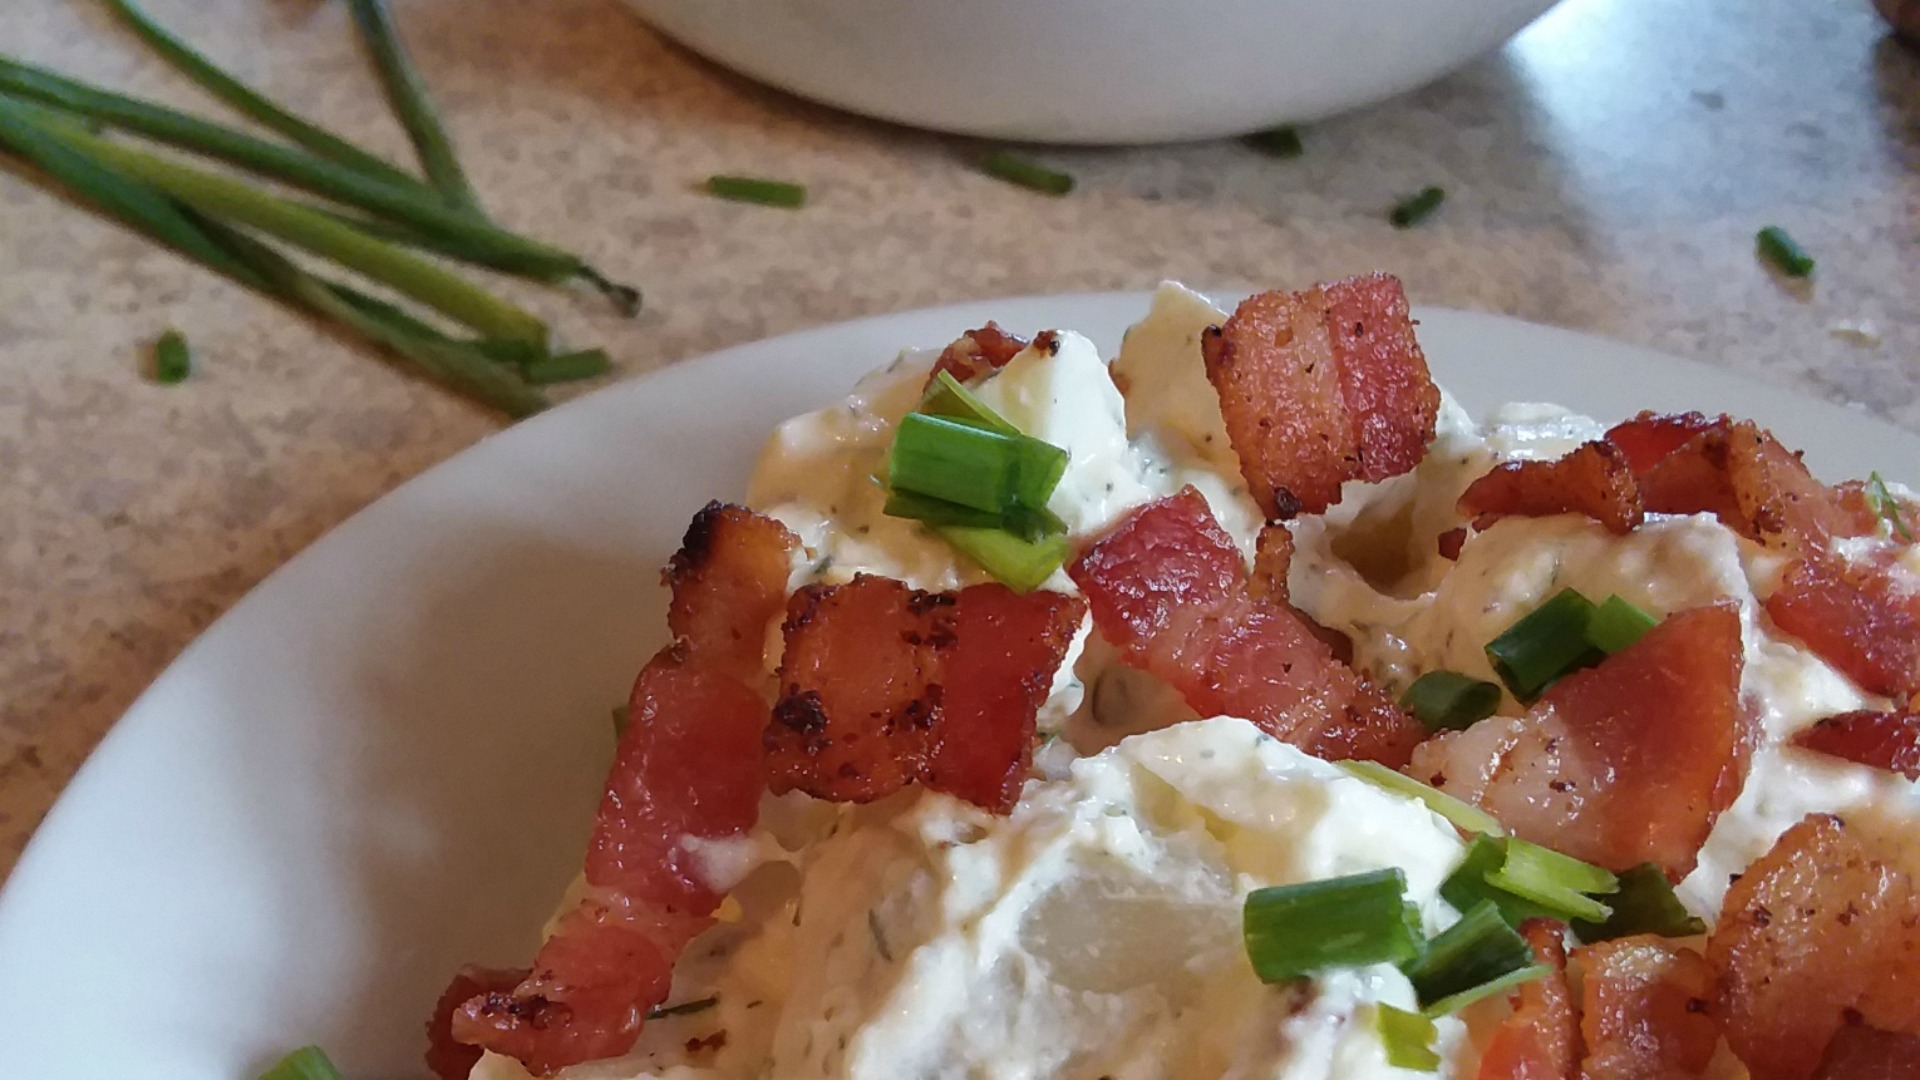 Potato Salad Recipe With Chives And Bacon